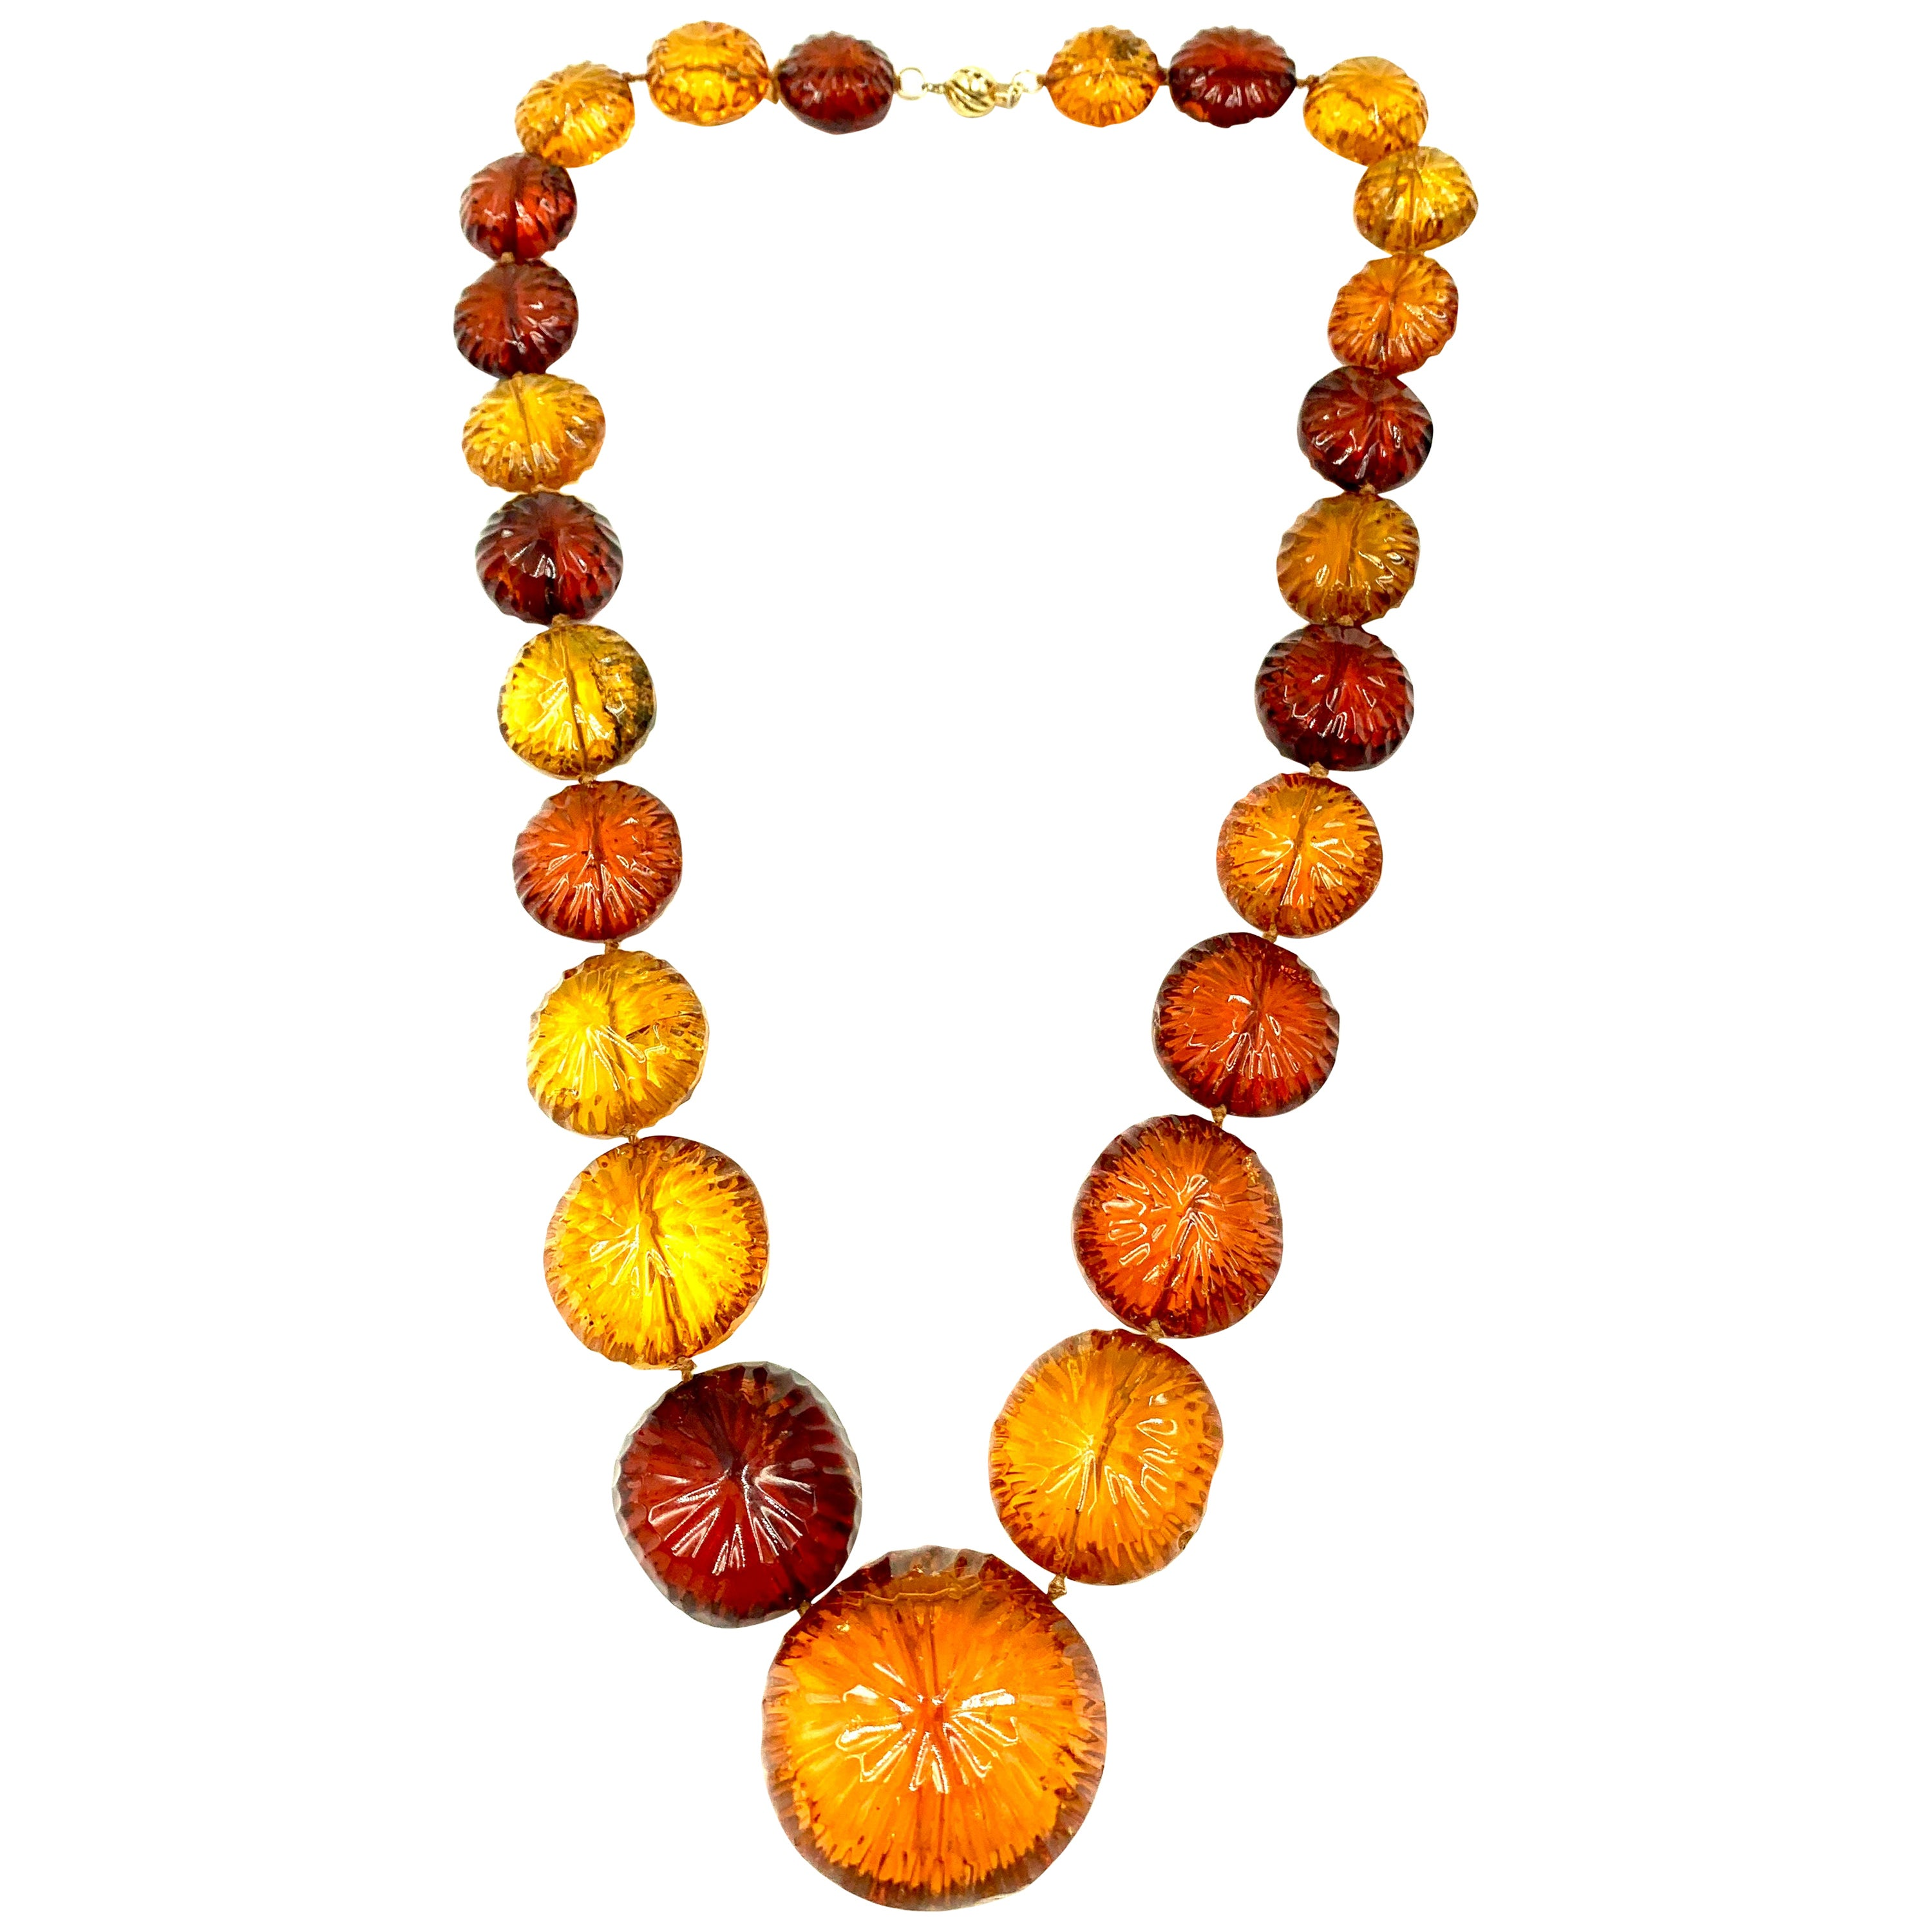 Antique Large Carved Amber Sun Disk Necklace, 18th-19th Century